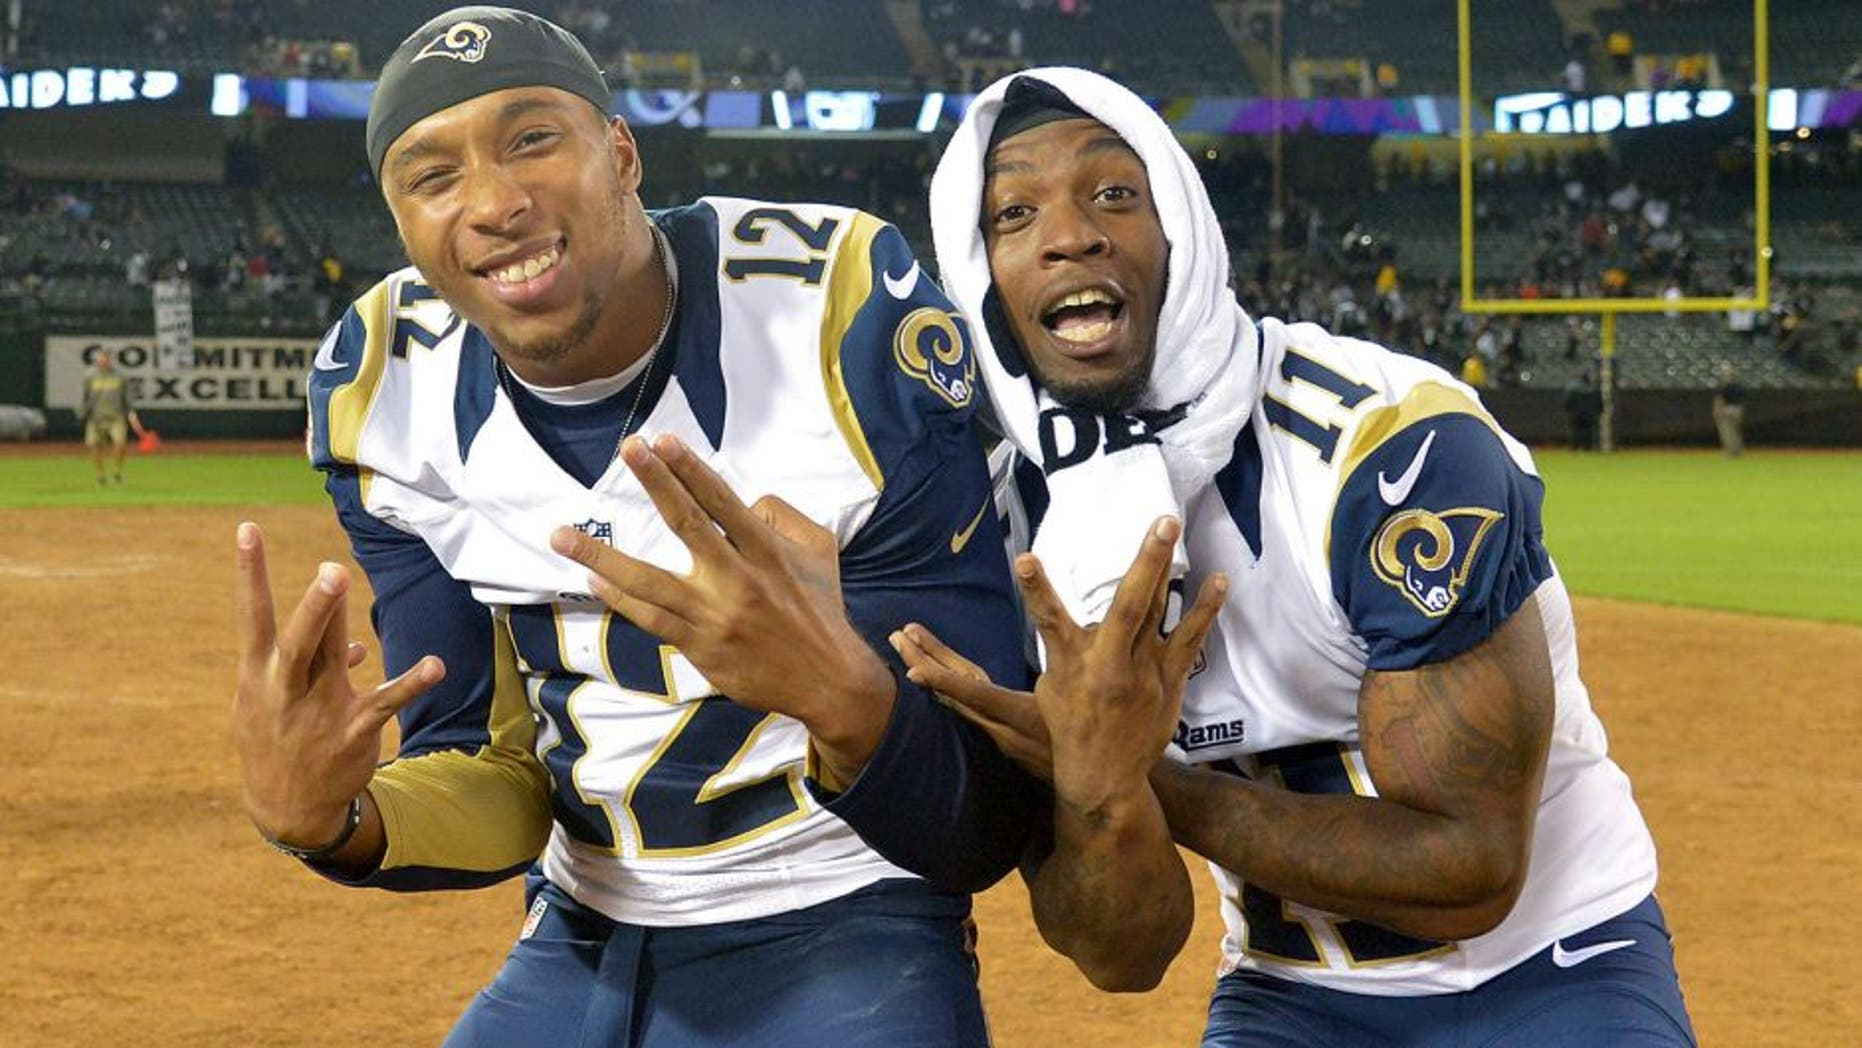 Aug 14, 2015; Oakland, CA, USA; St. Louis Rams receivers Stedman Bailey (12) and Tavon Austin (11) pose after the preseason NFL game against the Oakland Raiders at O.co Coliseum. Mandatory Credit: Kirby Lee-USA TODAY Sports